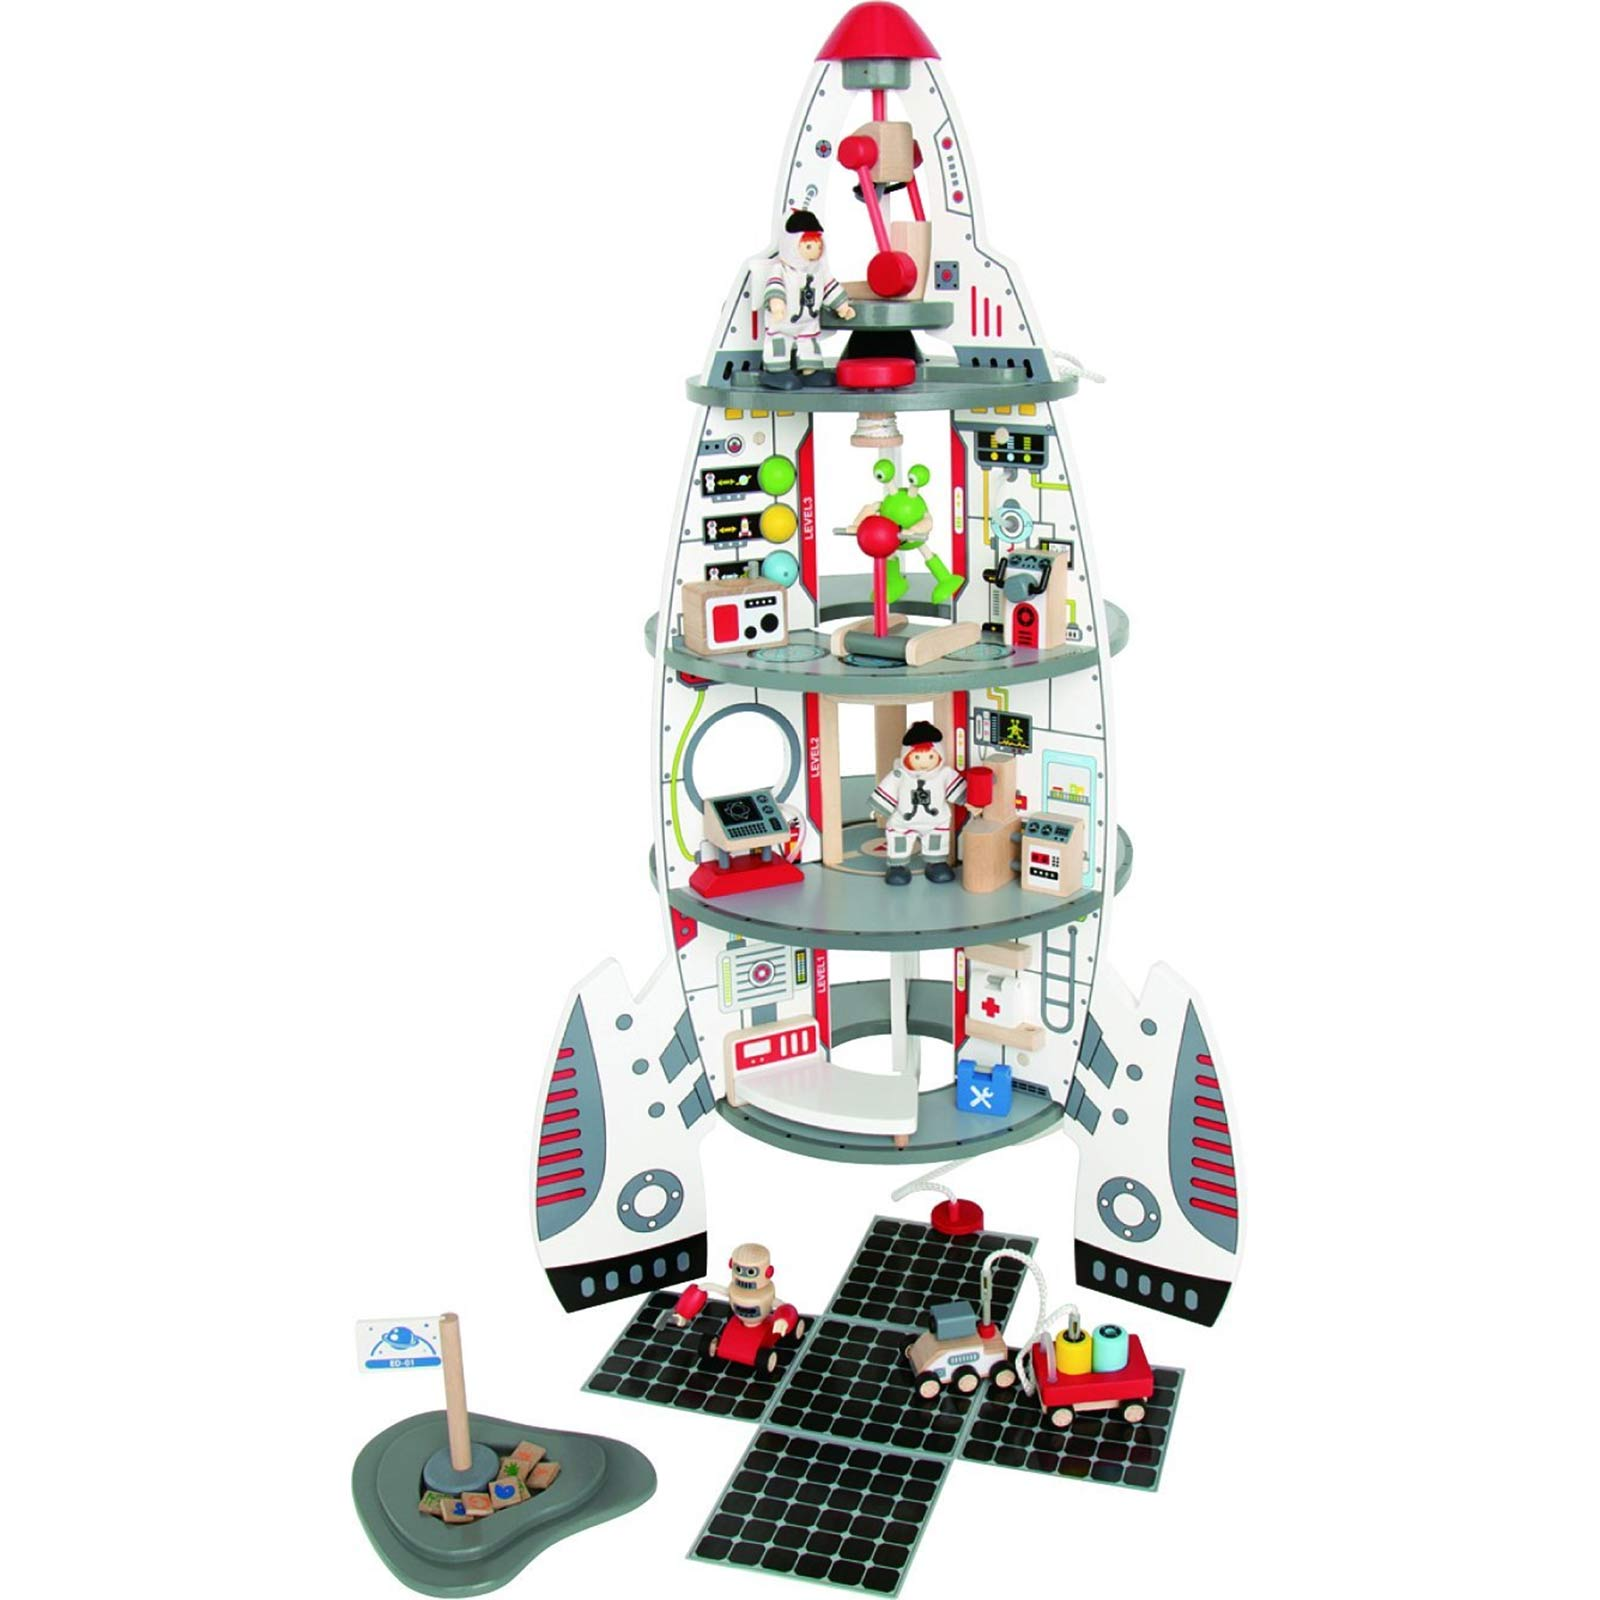 Hape DISCOVERY SPACE CENTRE Toddler/Child Wooden Activity ...